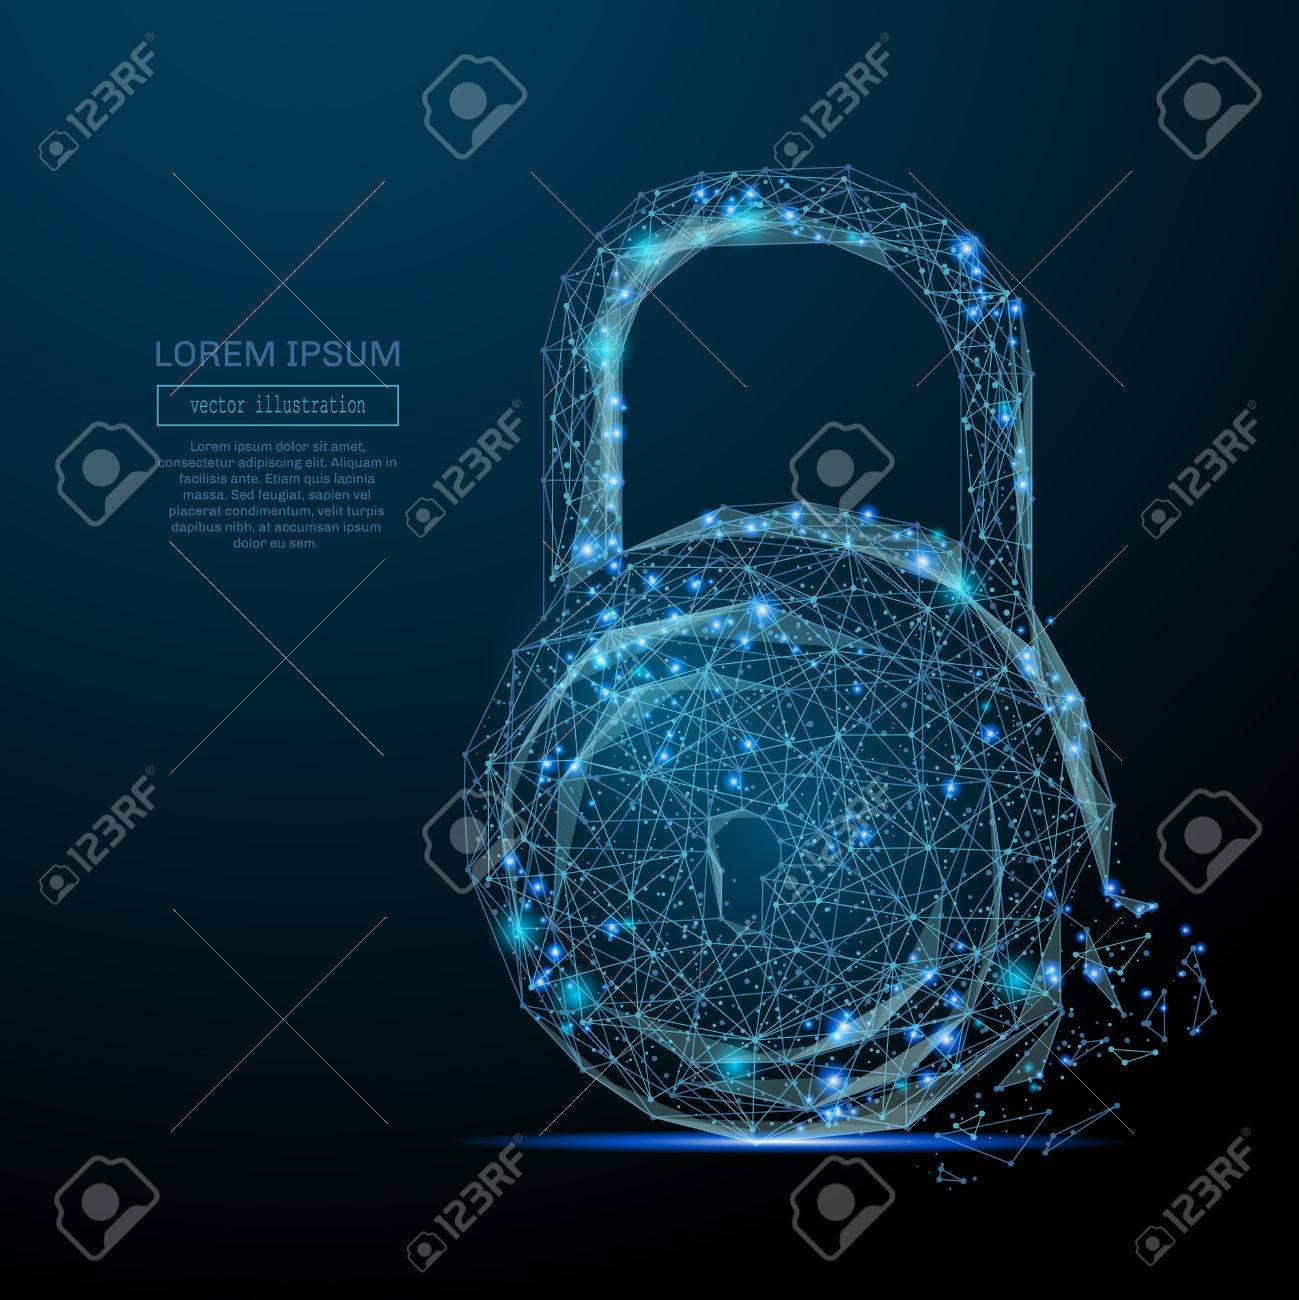 Abstract image of a lock in the form of a starry sky or space, consisting of points, lines, and shapes - 74643684